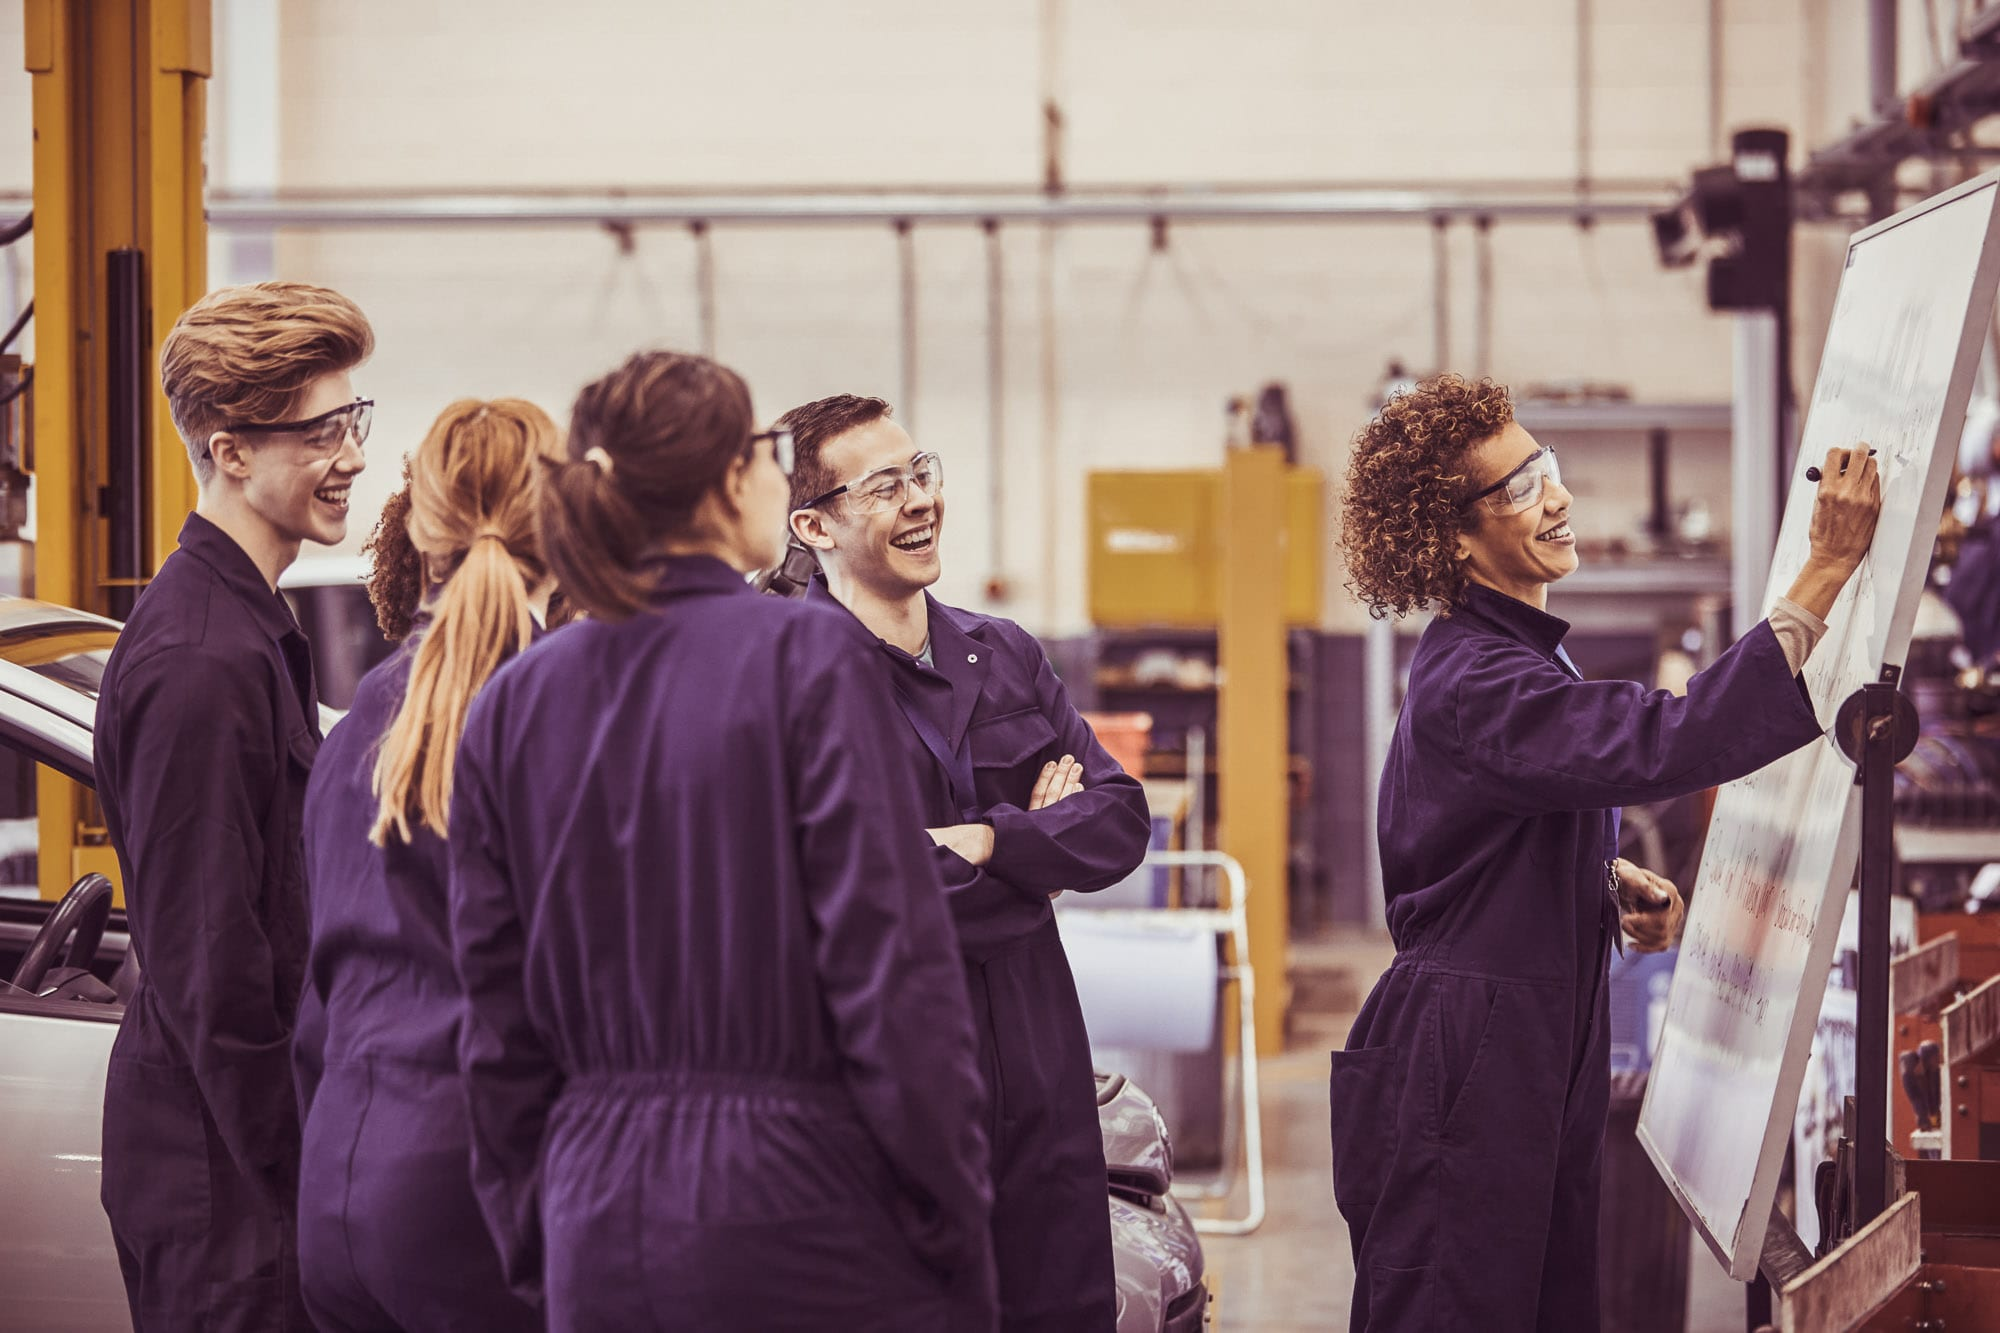 Group of students, working, apprenticeship